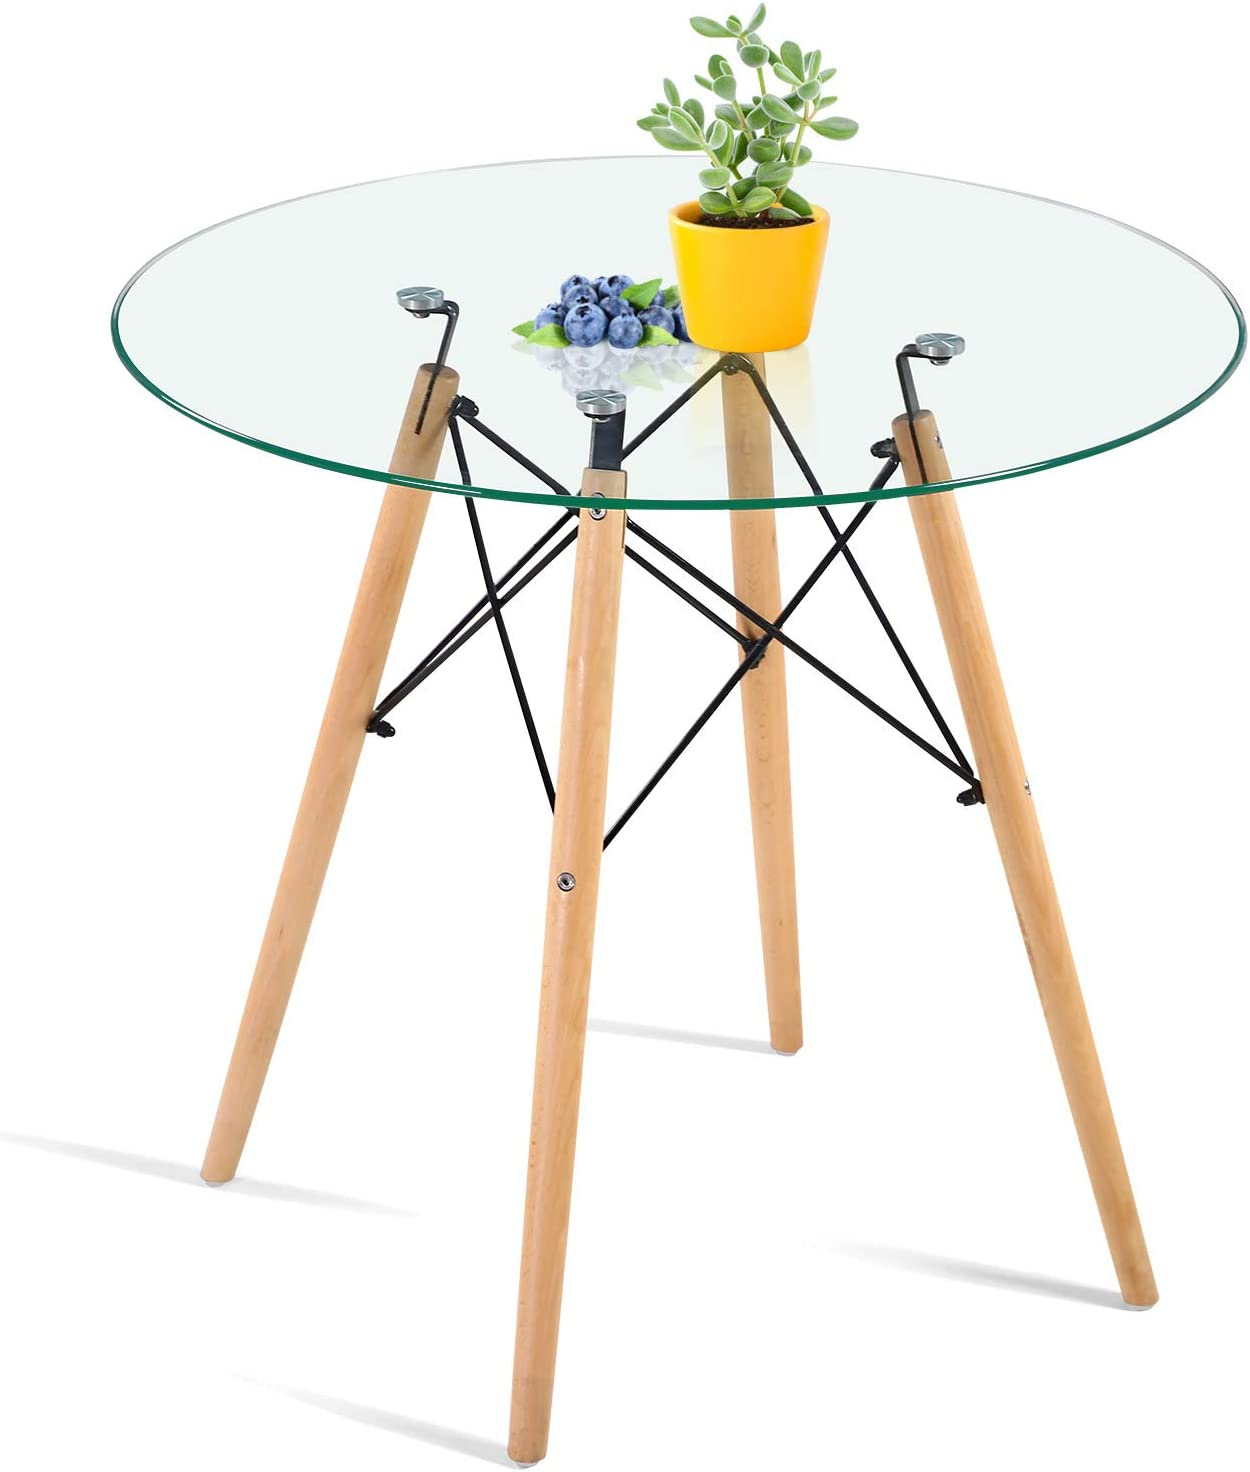 Amazon Com Hayosnfo Round Dining Table With Glass Top Glass Dining Table Modern Leisure Table With Wood Legs Coffee Table For Kitchen Dining Room Living Room Tables